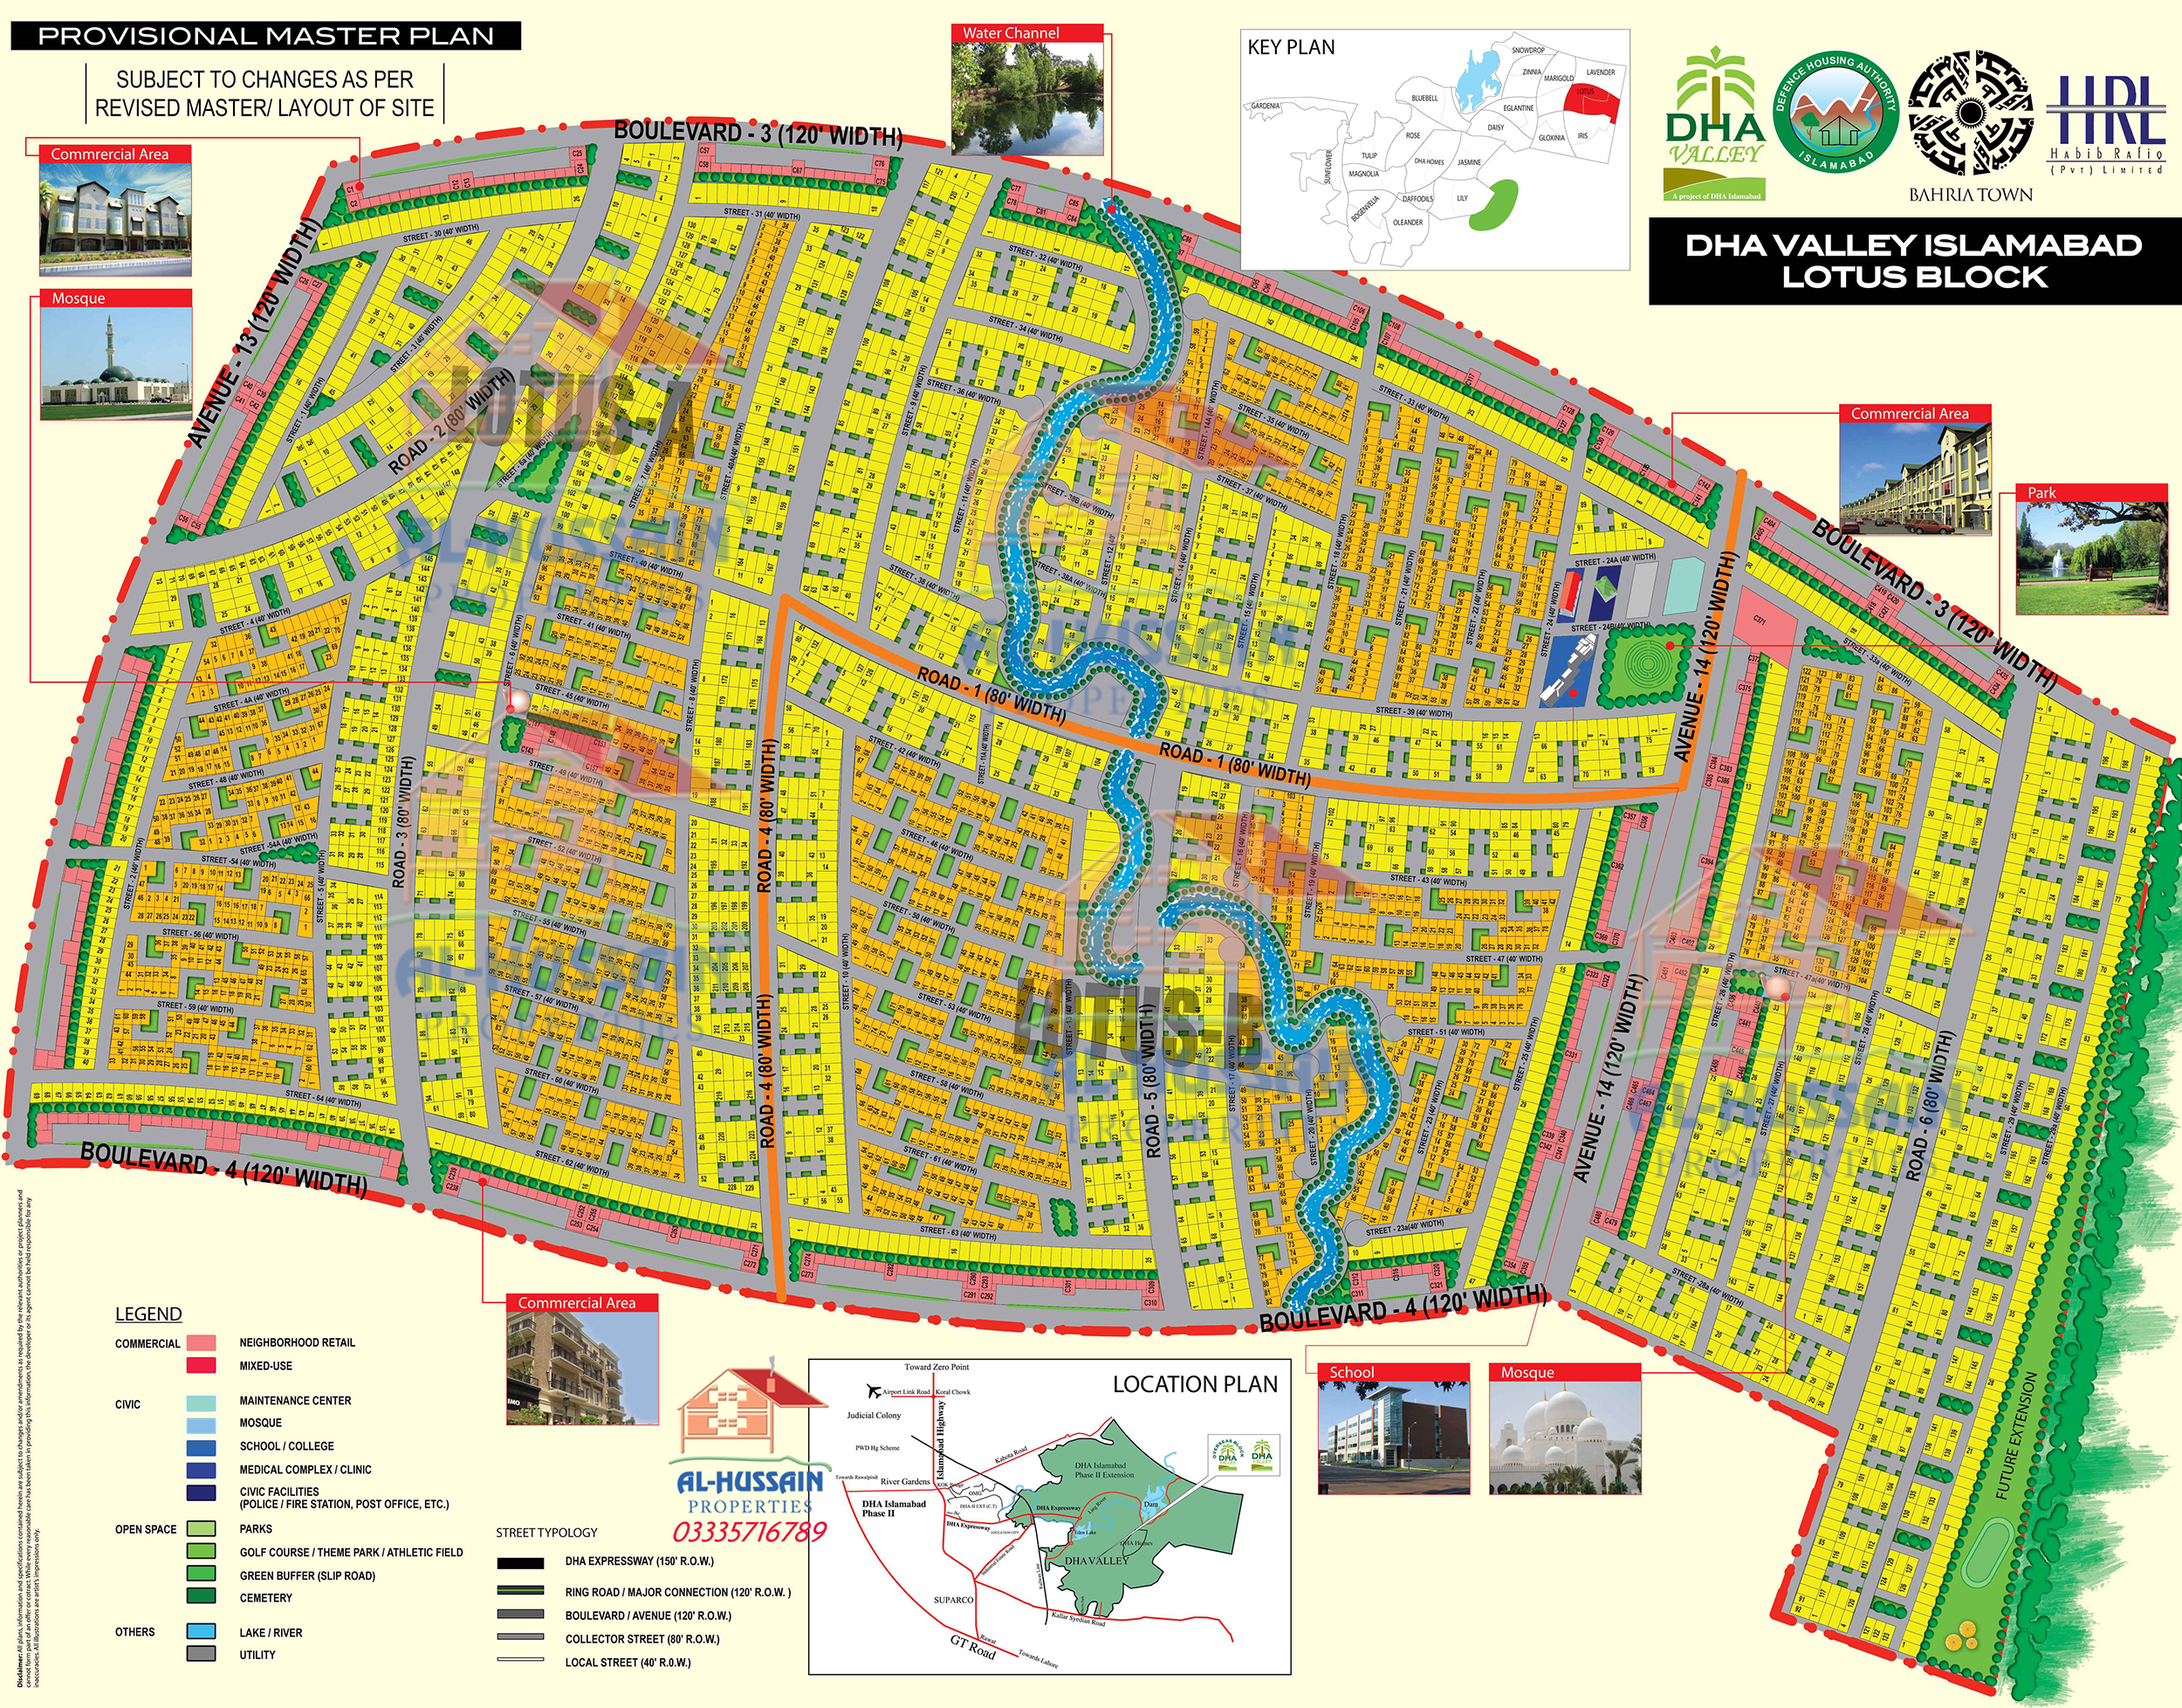 Lotus Block Dha Valley Islamabad